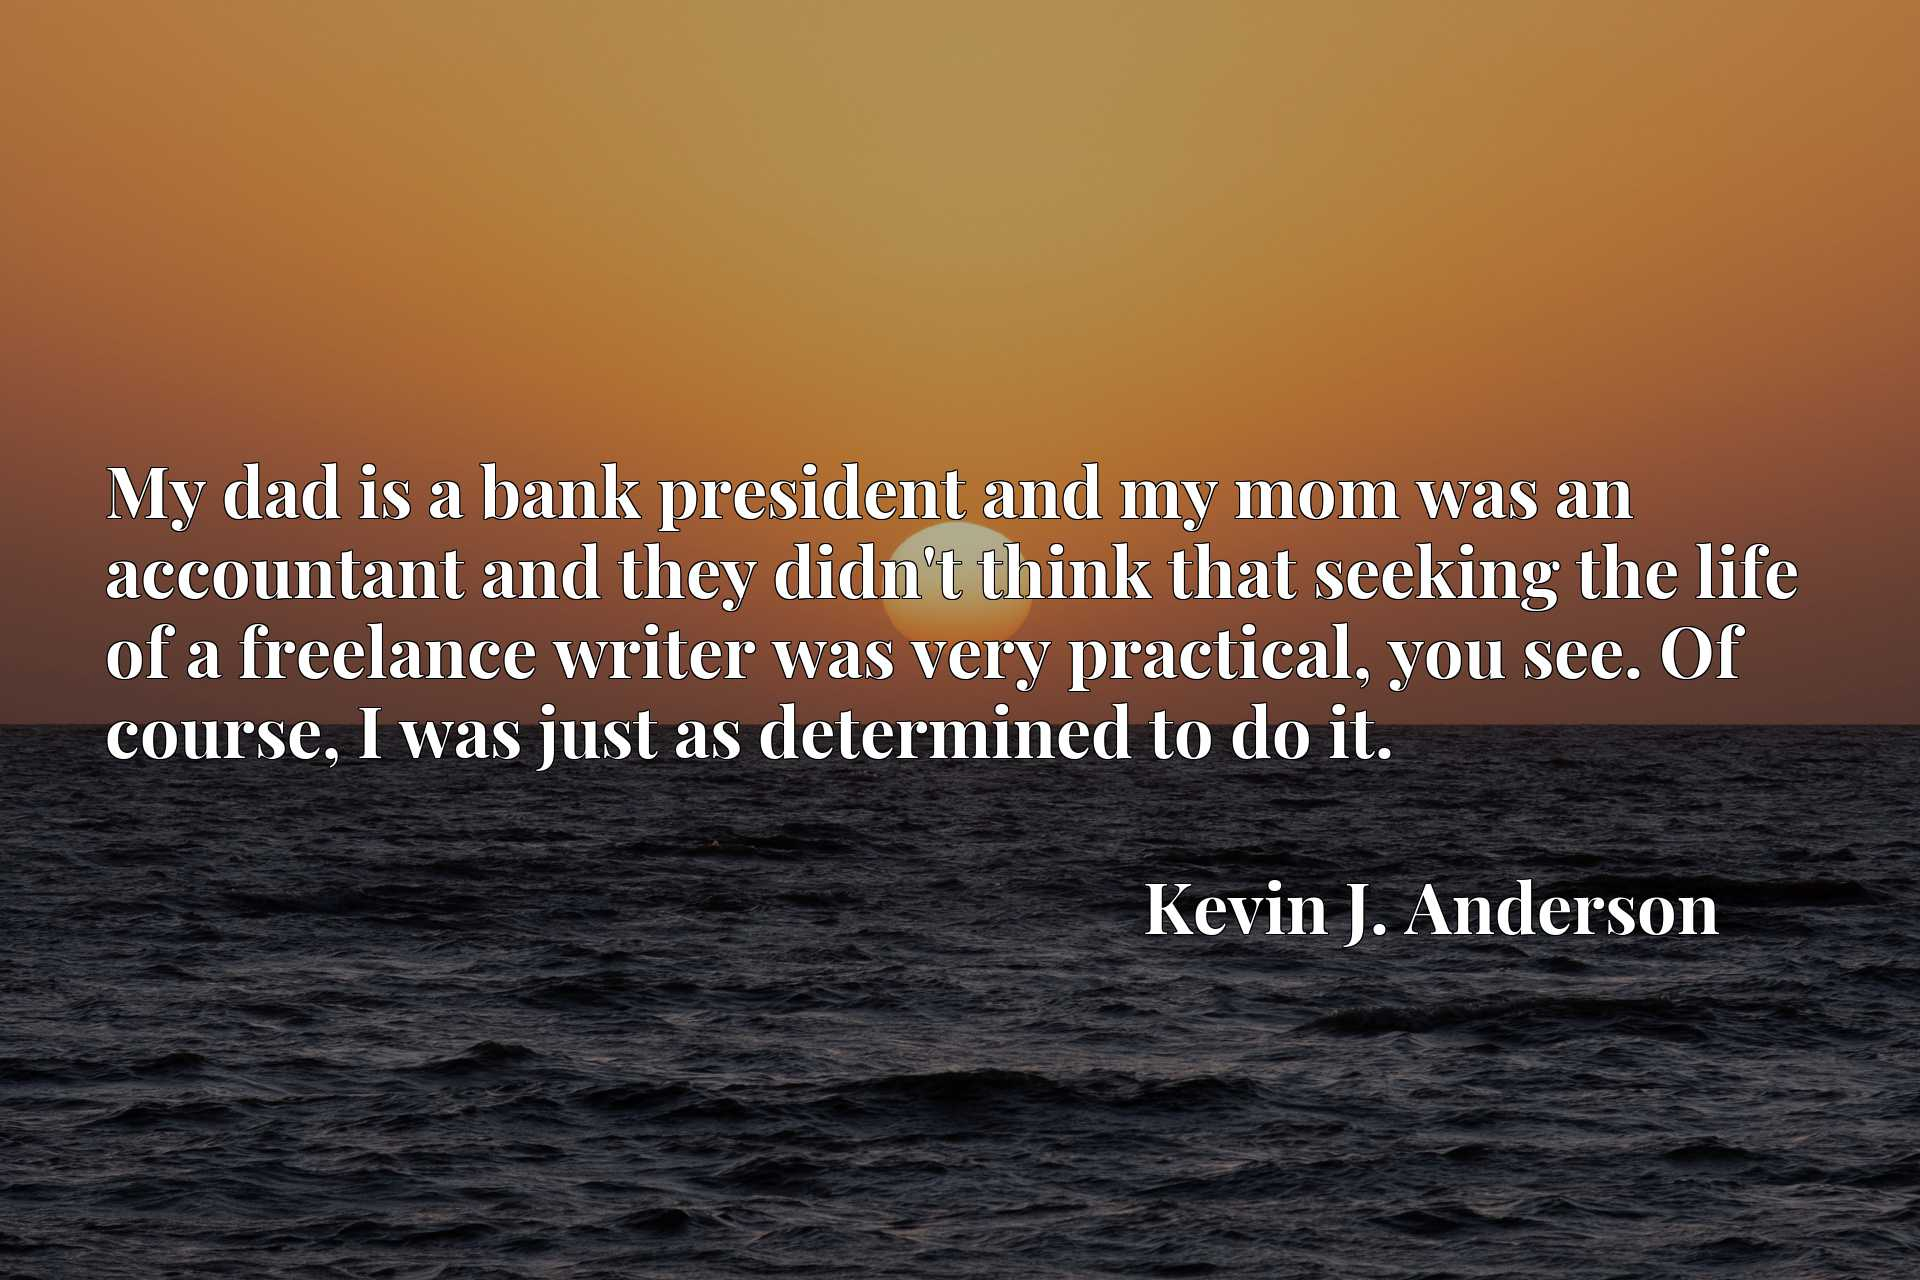 My dad is a bank president and my mom was an accountant and they didn't think that seeking the life of a freelance writer was very practical, you see. Of course, I was just as determined to do it.